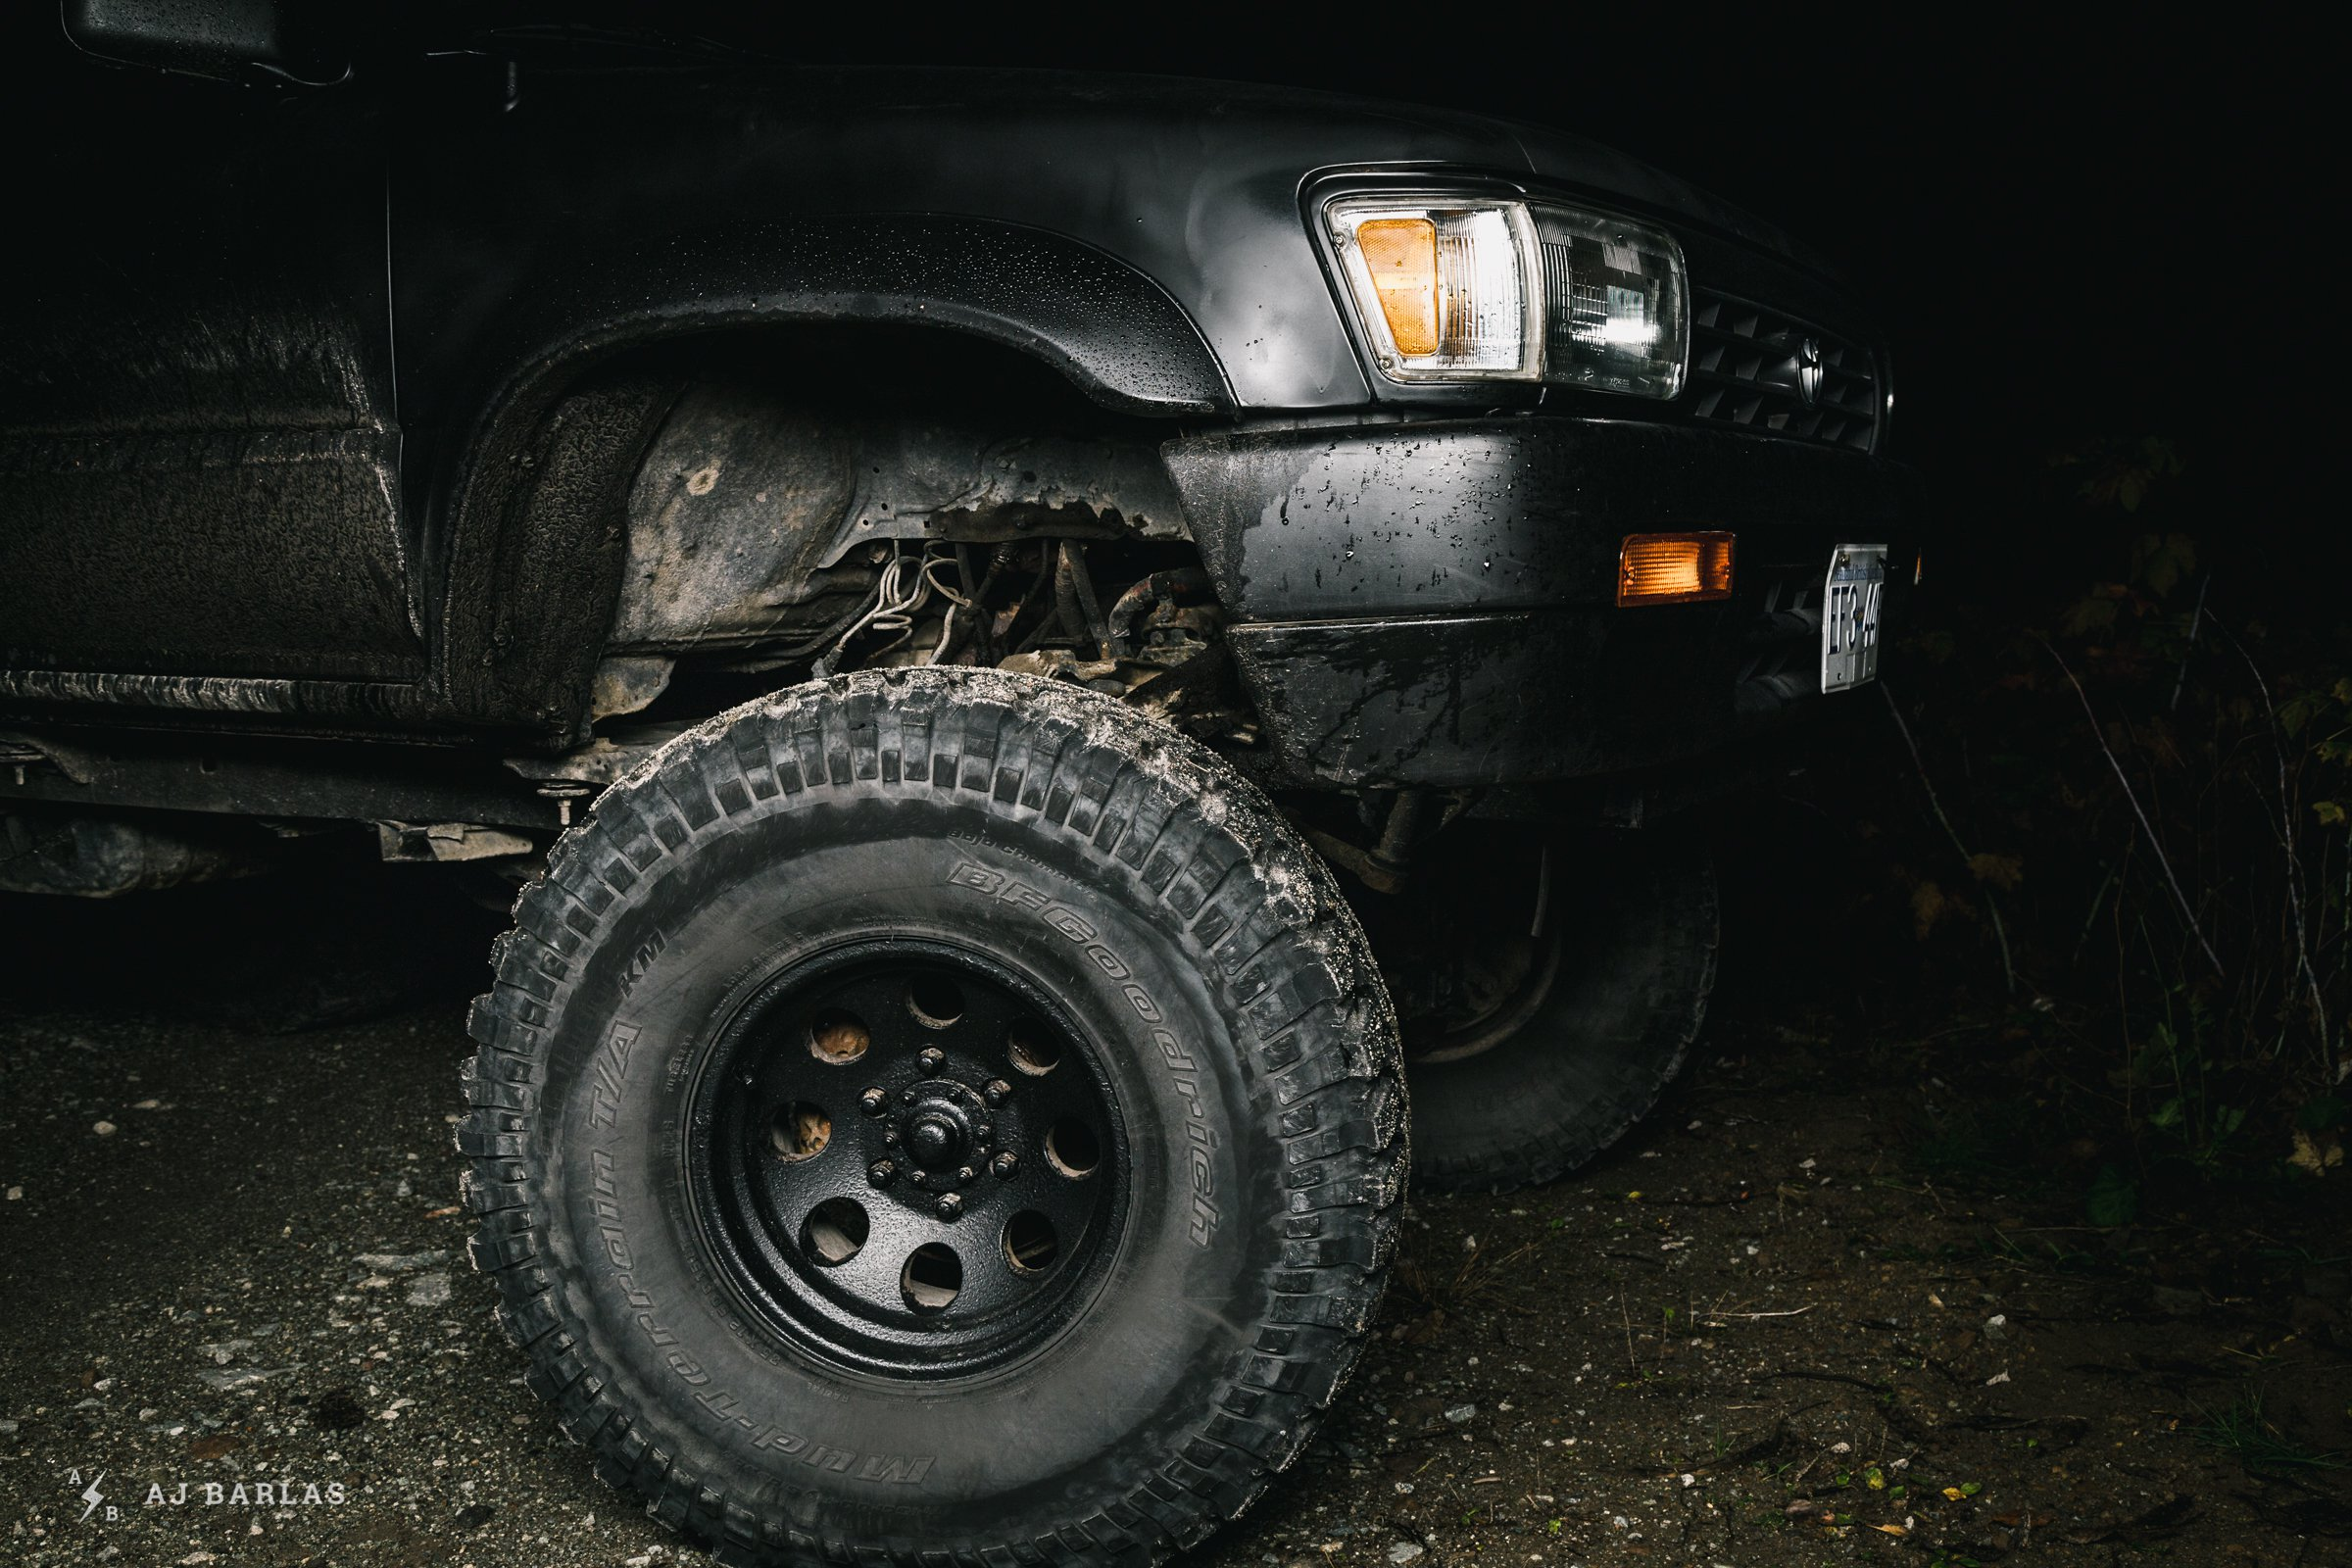 35-inch tires and a lot of room to move on Owen Foster's Toyota 4Runner Zombie